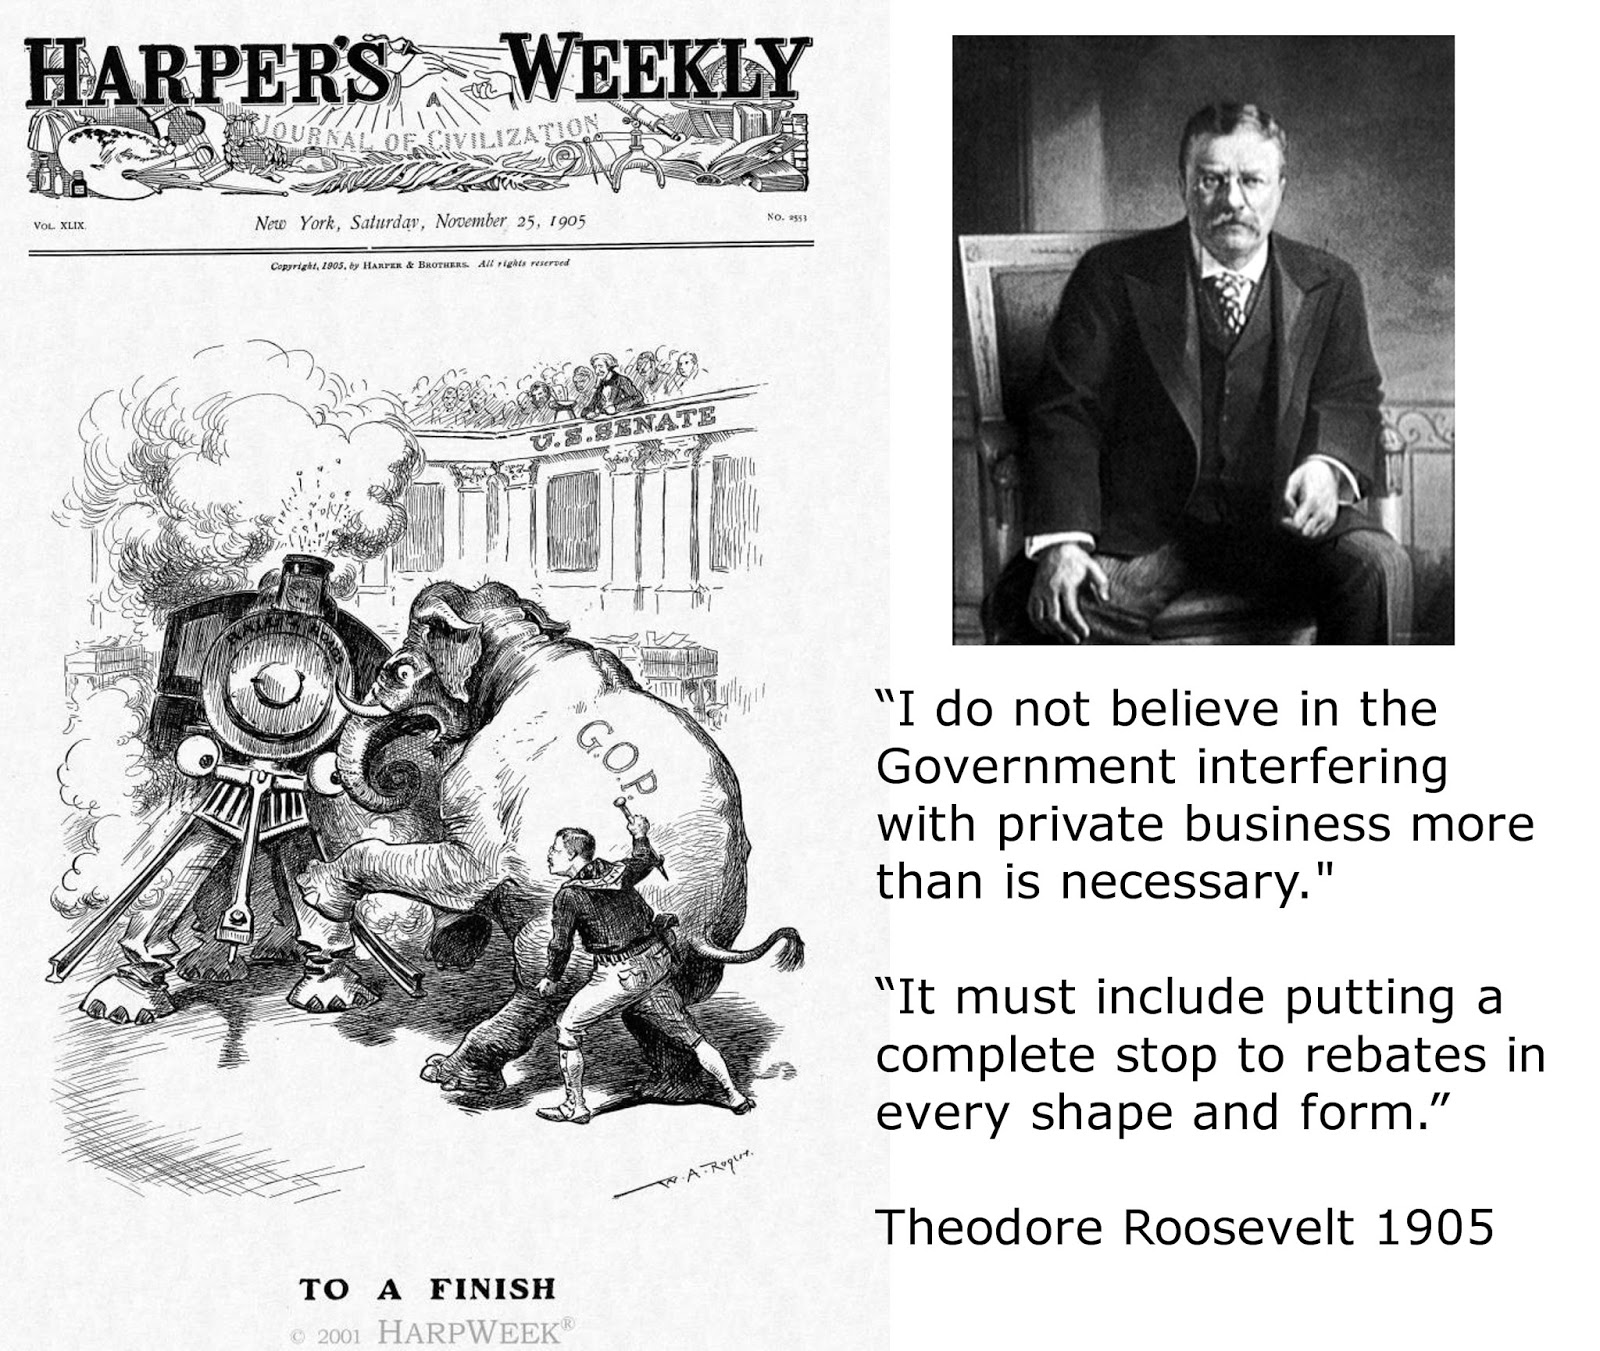 state of the union history 1905 theodore roosevelt